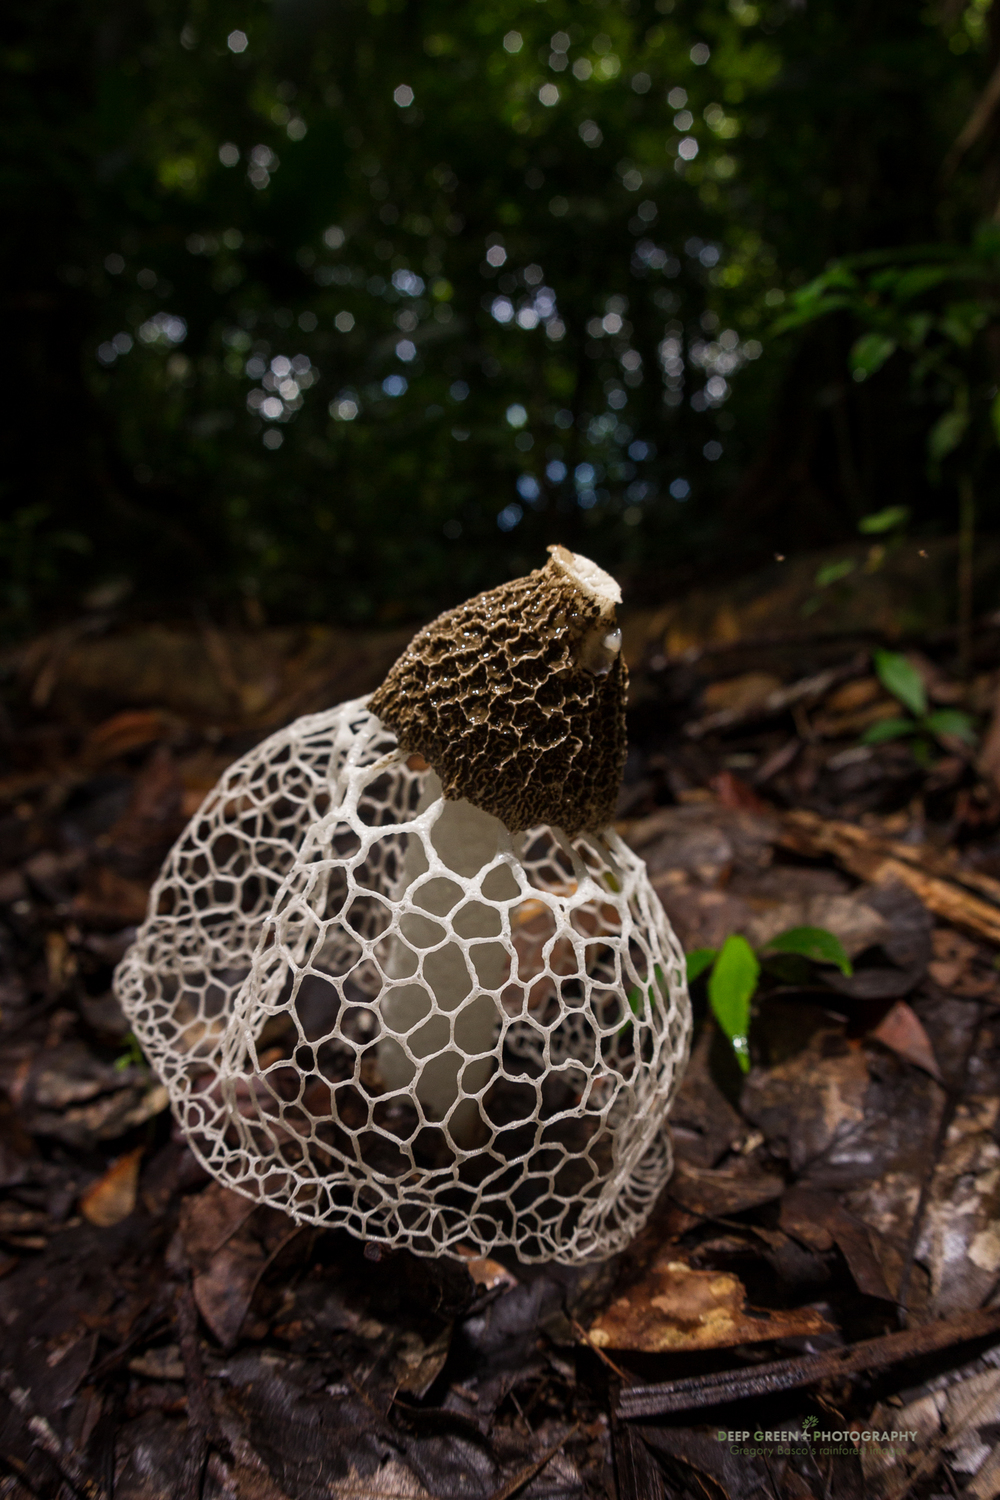 a bridal veil mushroom in Corcovado National Park